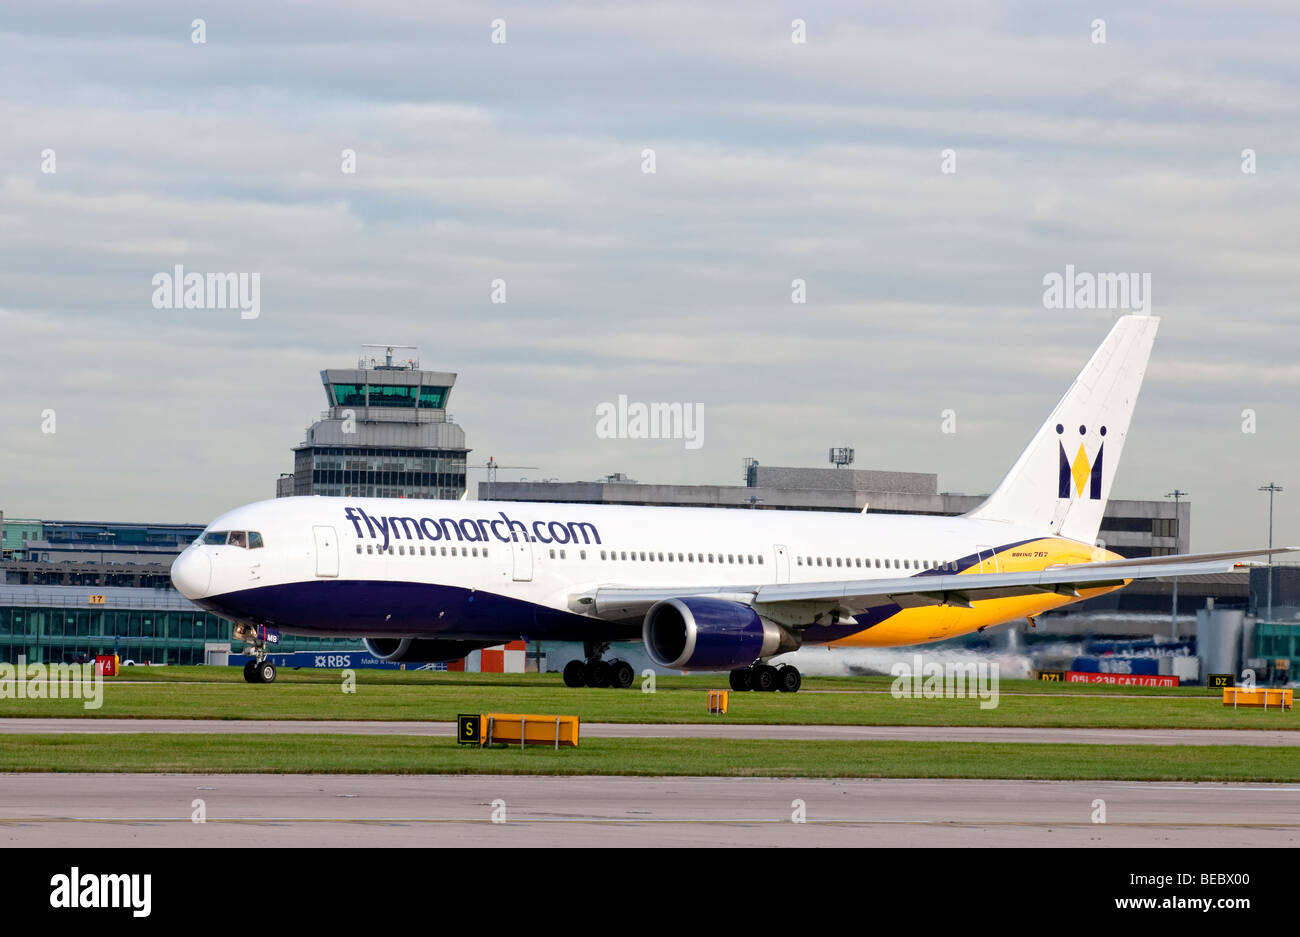 Monarch aircraft taxiing for take off from Manchester Airport (Ringway Airport) in Manchester, England - Stock Image